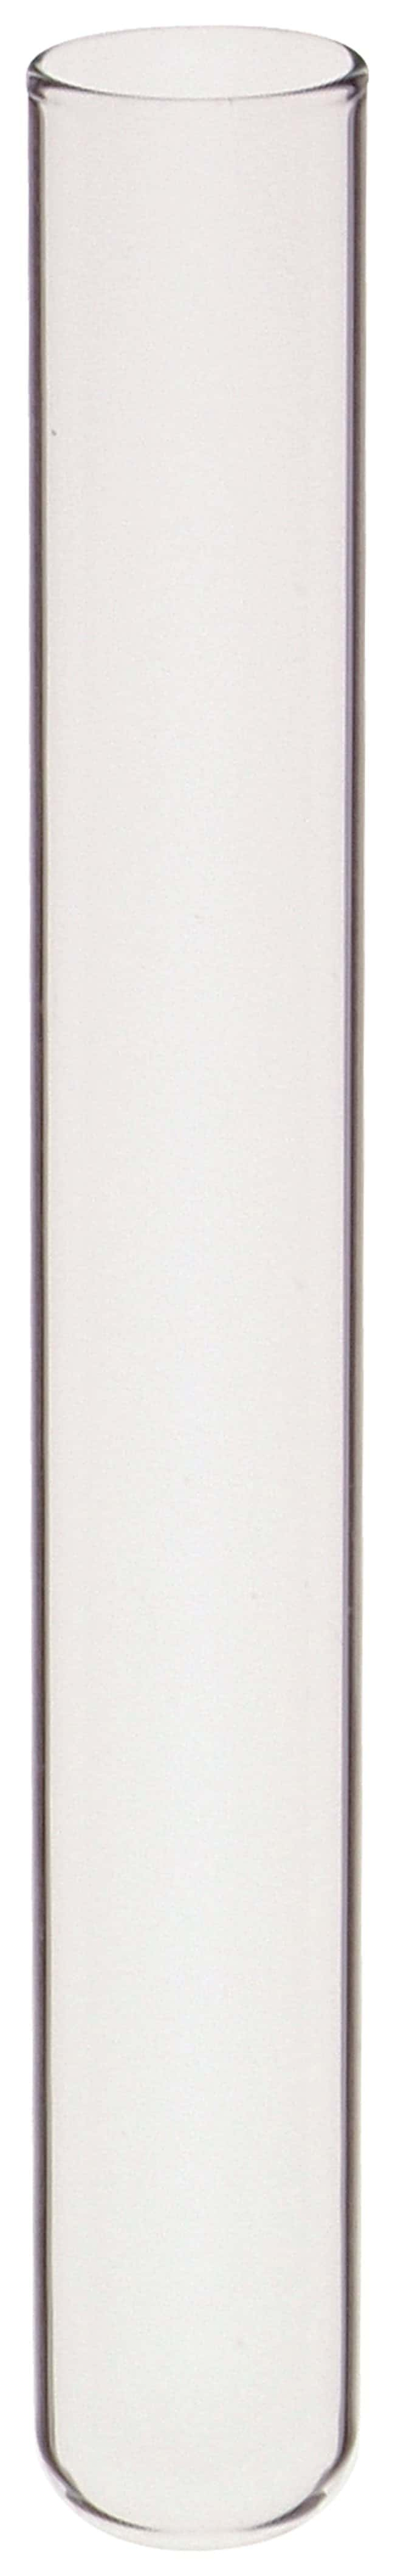 DWK Life Sciences&nbsp;Kimble&trade; Plain Disposable Borosilicate Glass Tubes&nbsp;<img src=